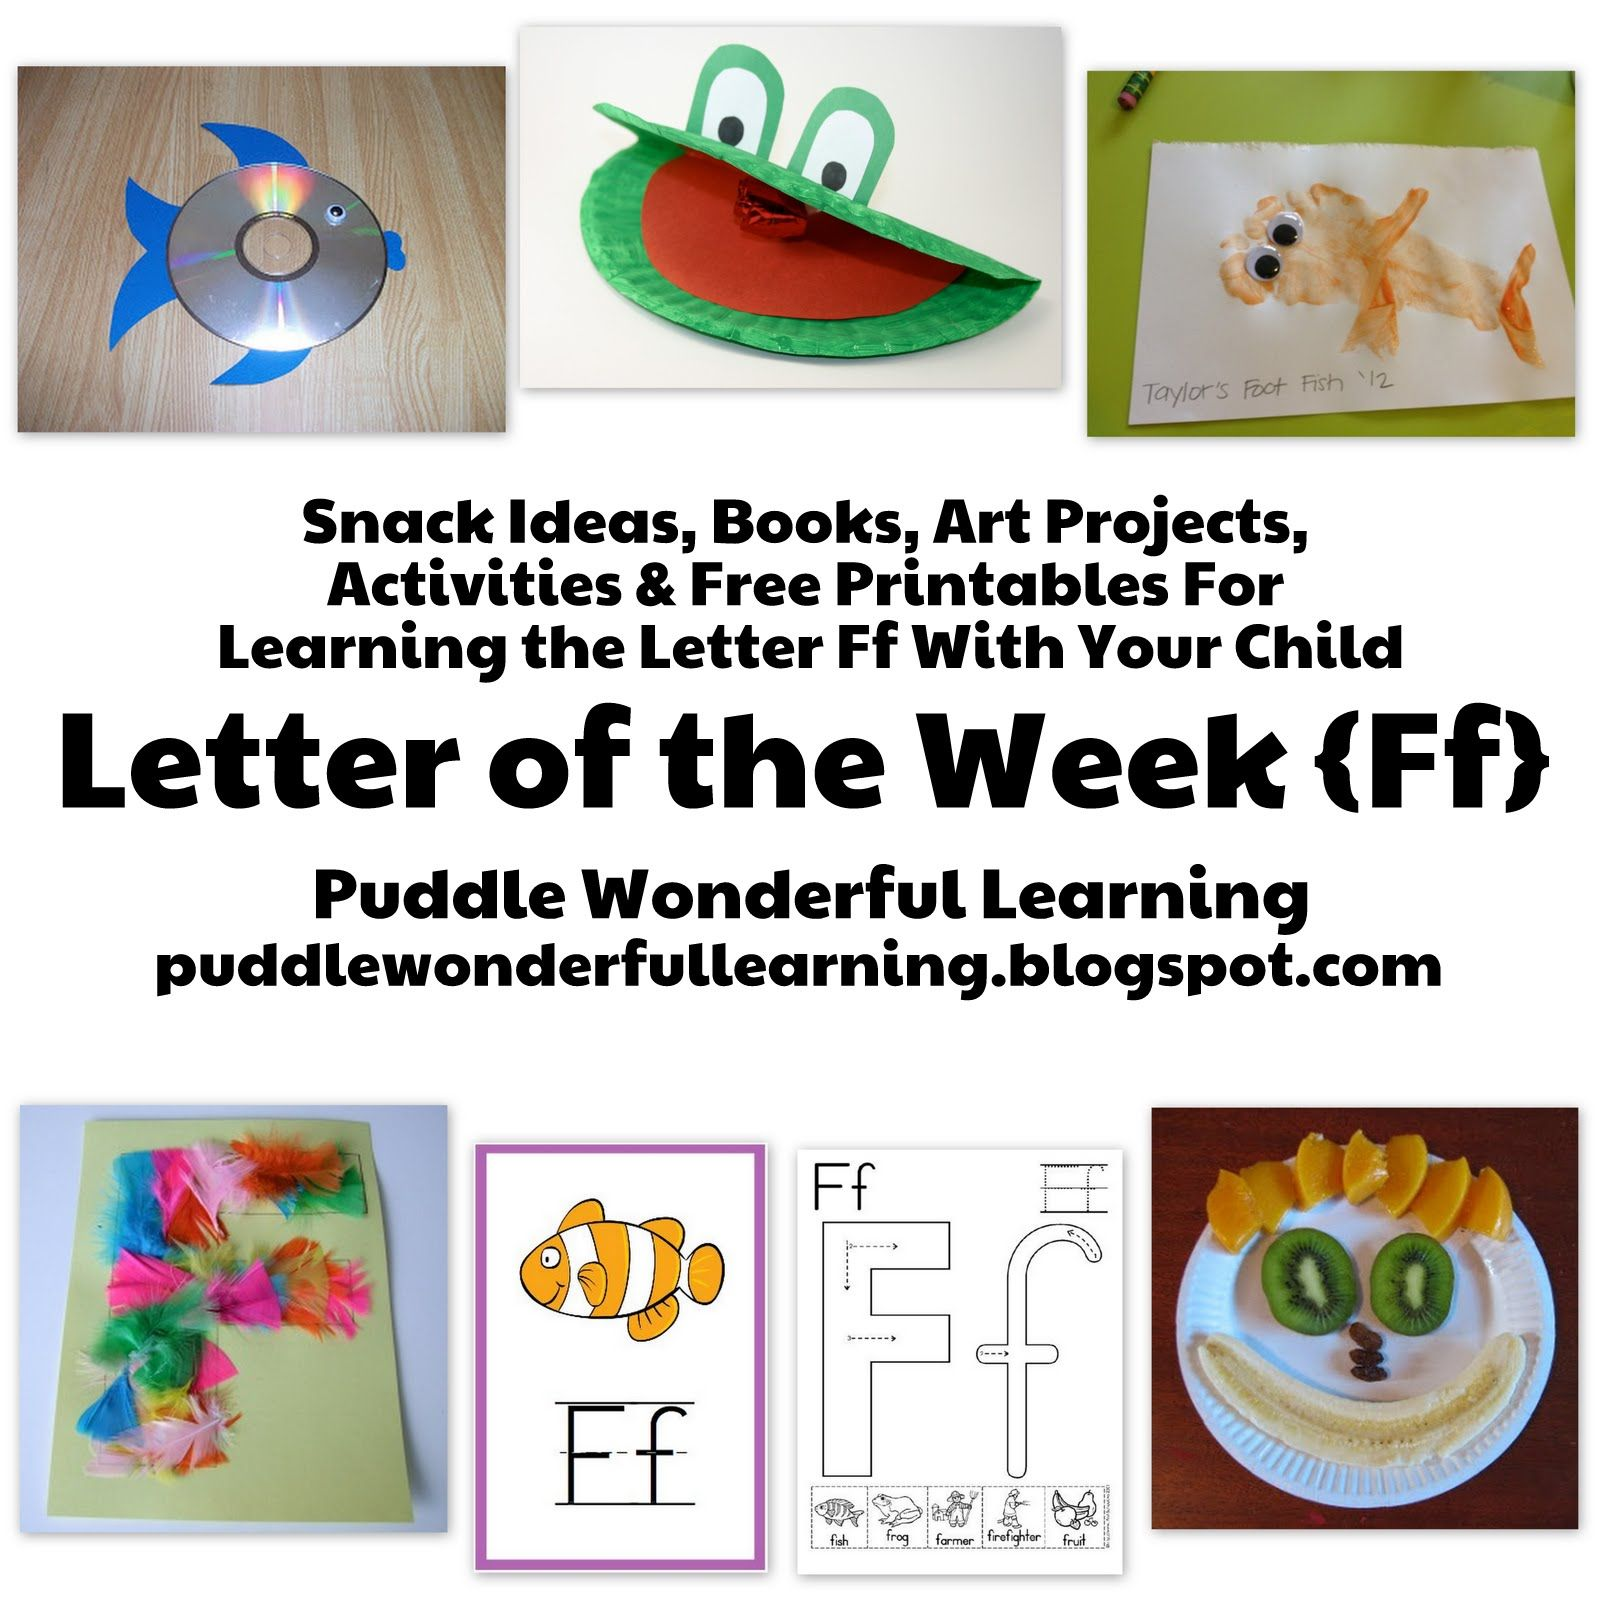 Puddle Wonderful Learning Preschool Activities Letter Of The Week Ff